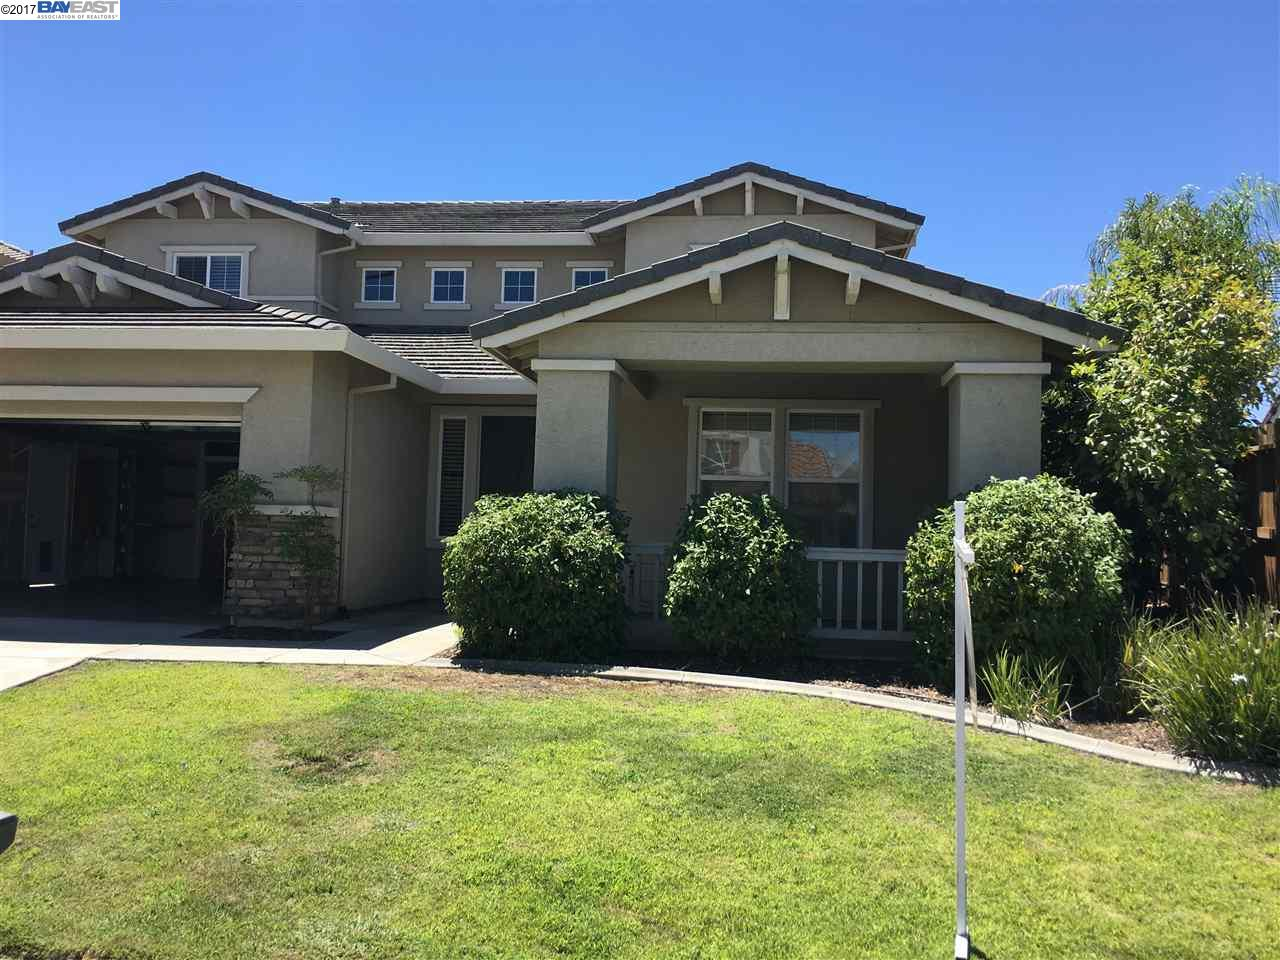 Single Family Home for Sale at 205 Camross Court Lincoln, California 95648 United States